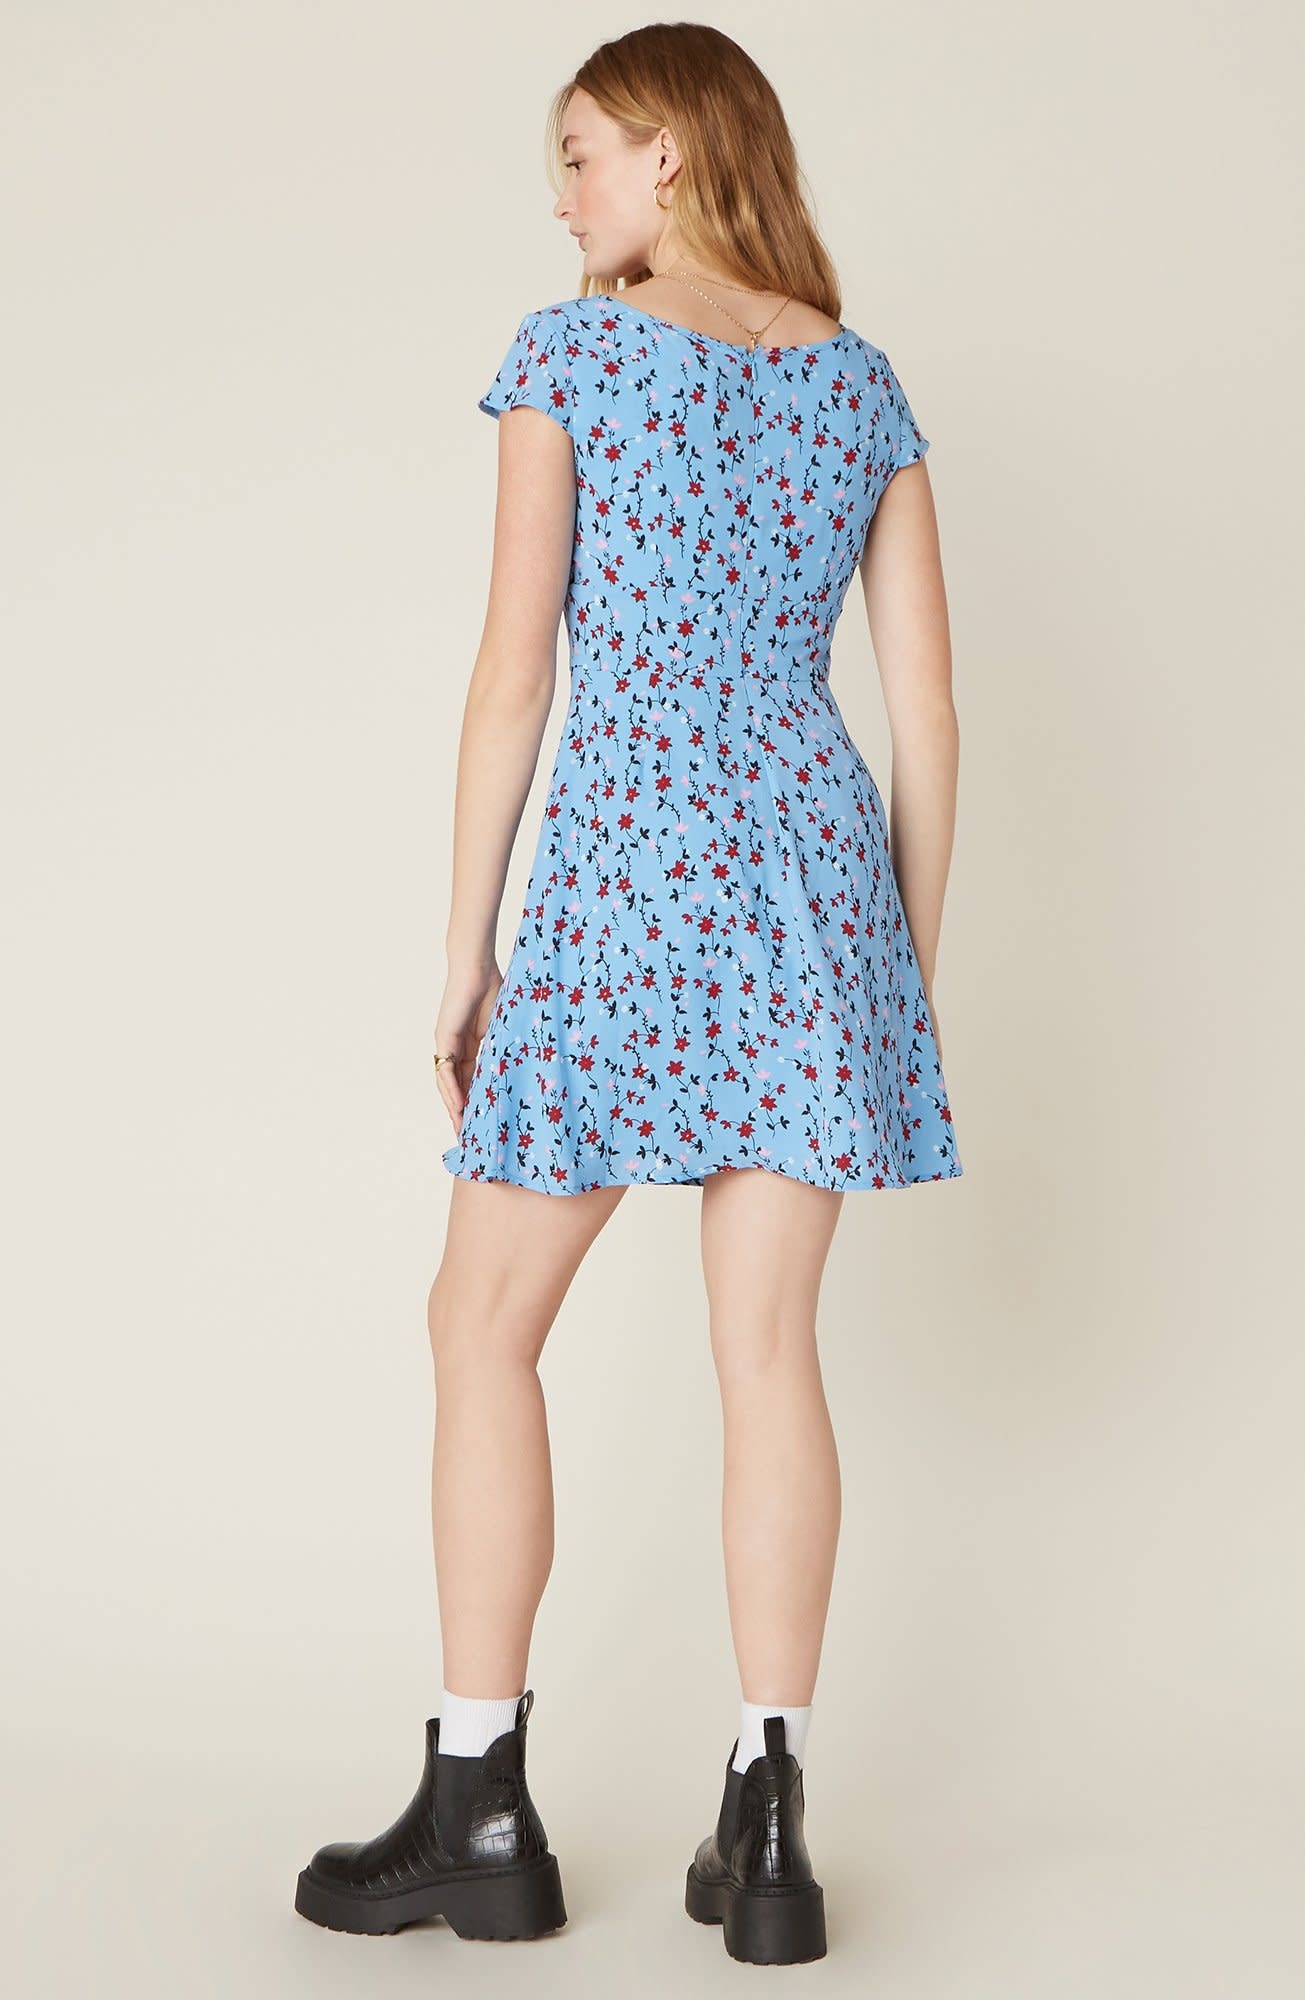 BB Dakota La Femme Floral Mini Dress